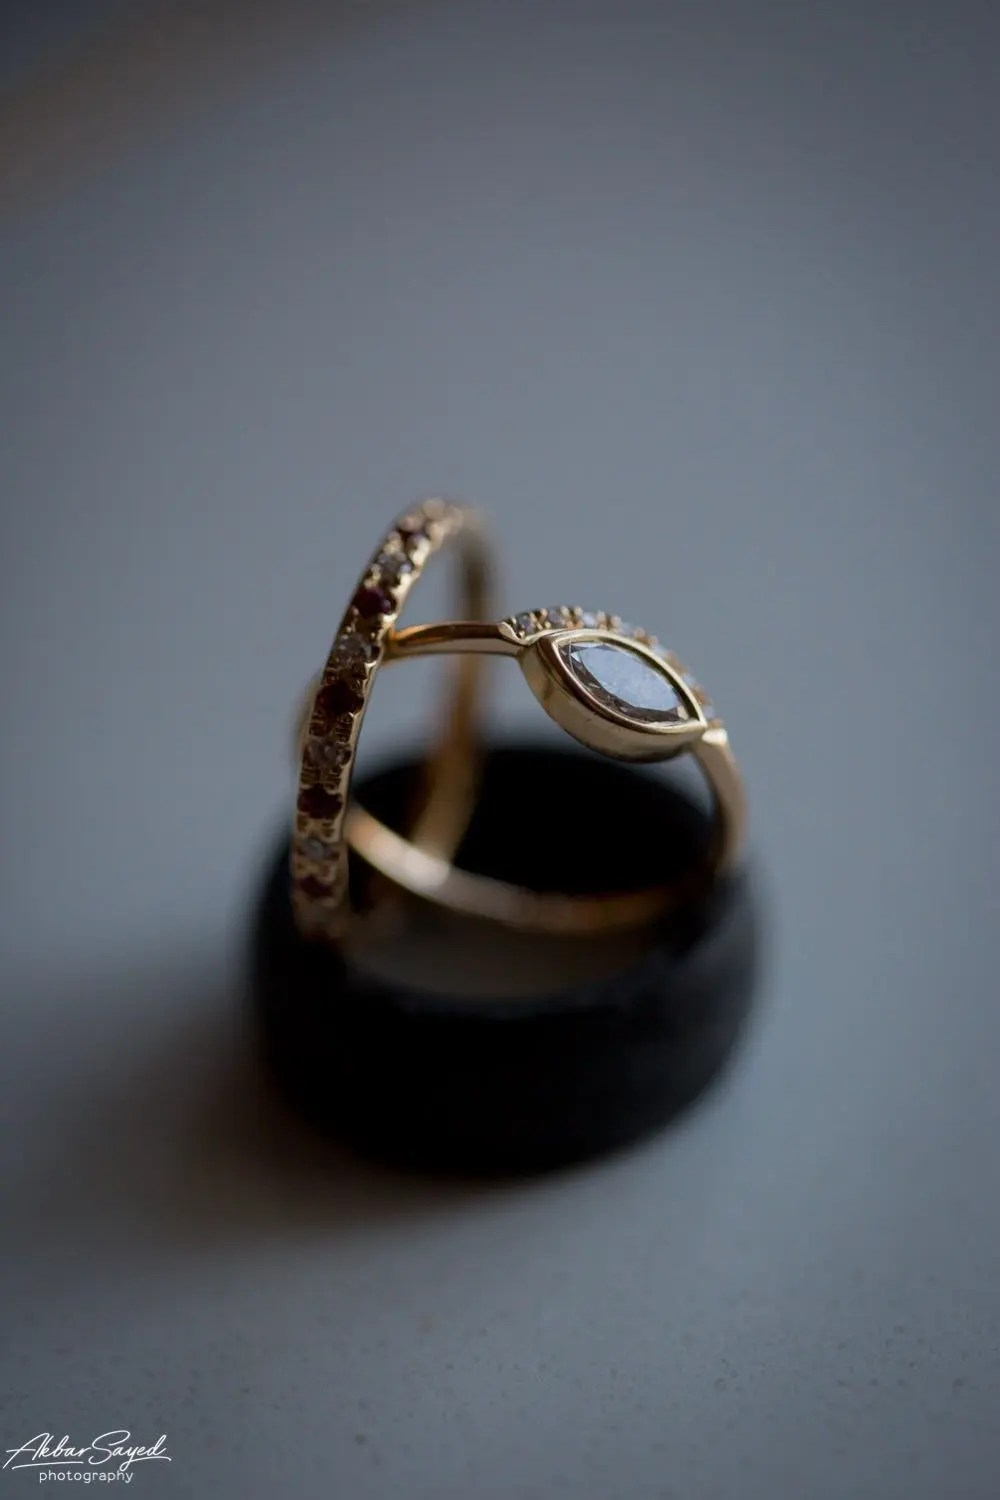 A photo of wedding rings during a Jewish - Hindu fusion wedding at the Chesapeake Bay Hyatt in Cambridge, Maryland.